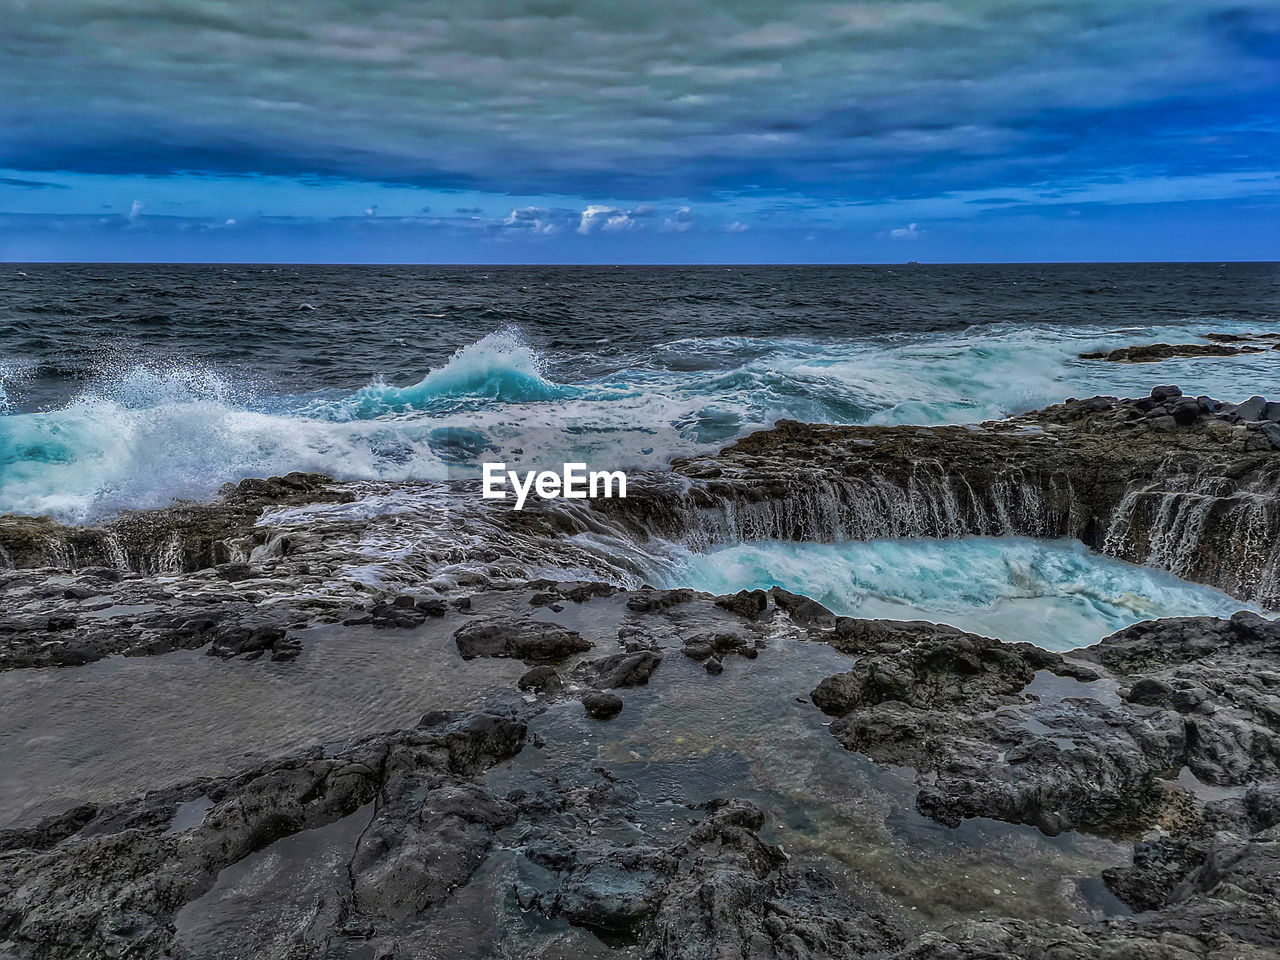 sky, water, sea, beauty in nature, scenics - nature, cloud - sky, rock, motion, beach, solid, nature, horizon over water, rock - object, land, horizon, no people, tranquility, tranquil scene, day, outdoors, power in nature